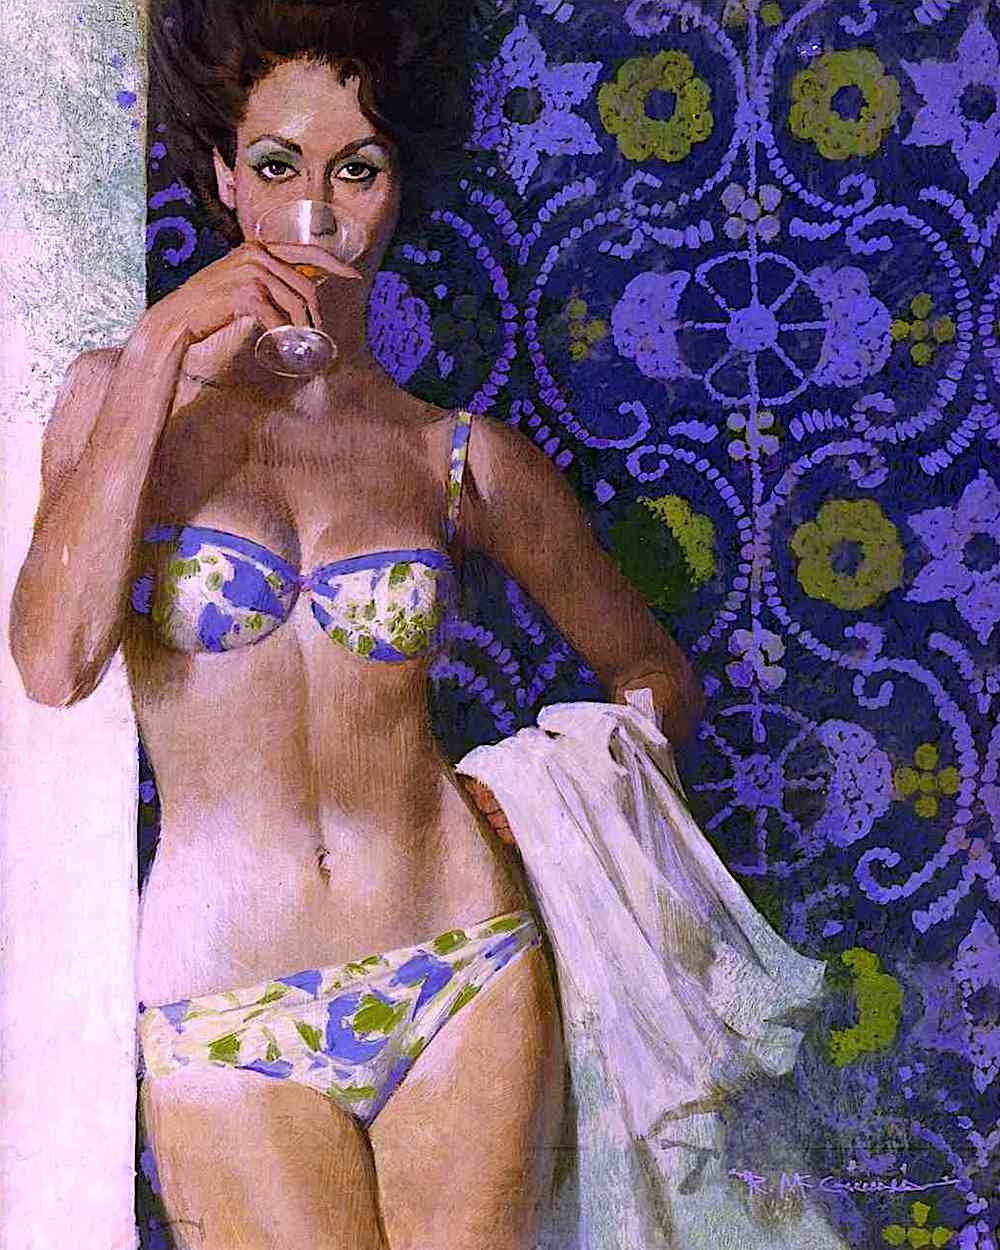 a Robert McGinnis illustration of a confident sexy woman in a bikini sipping a martini